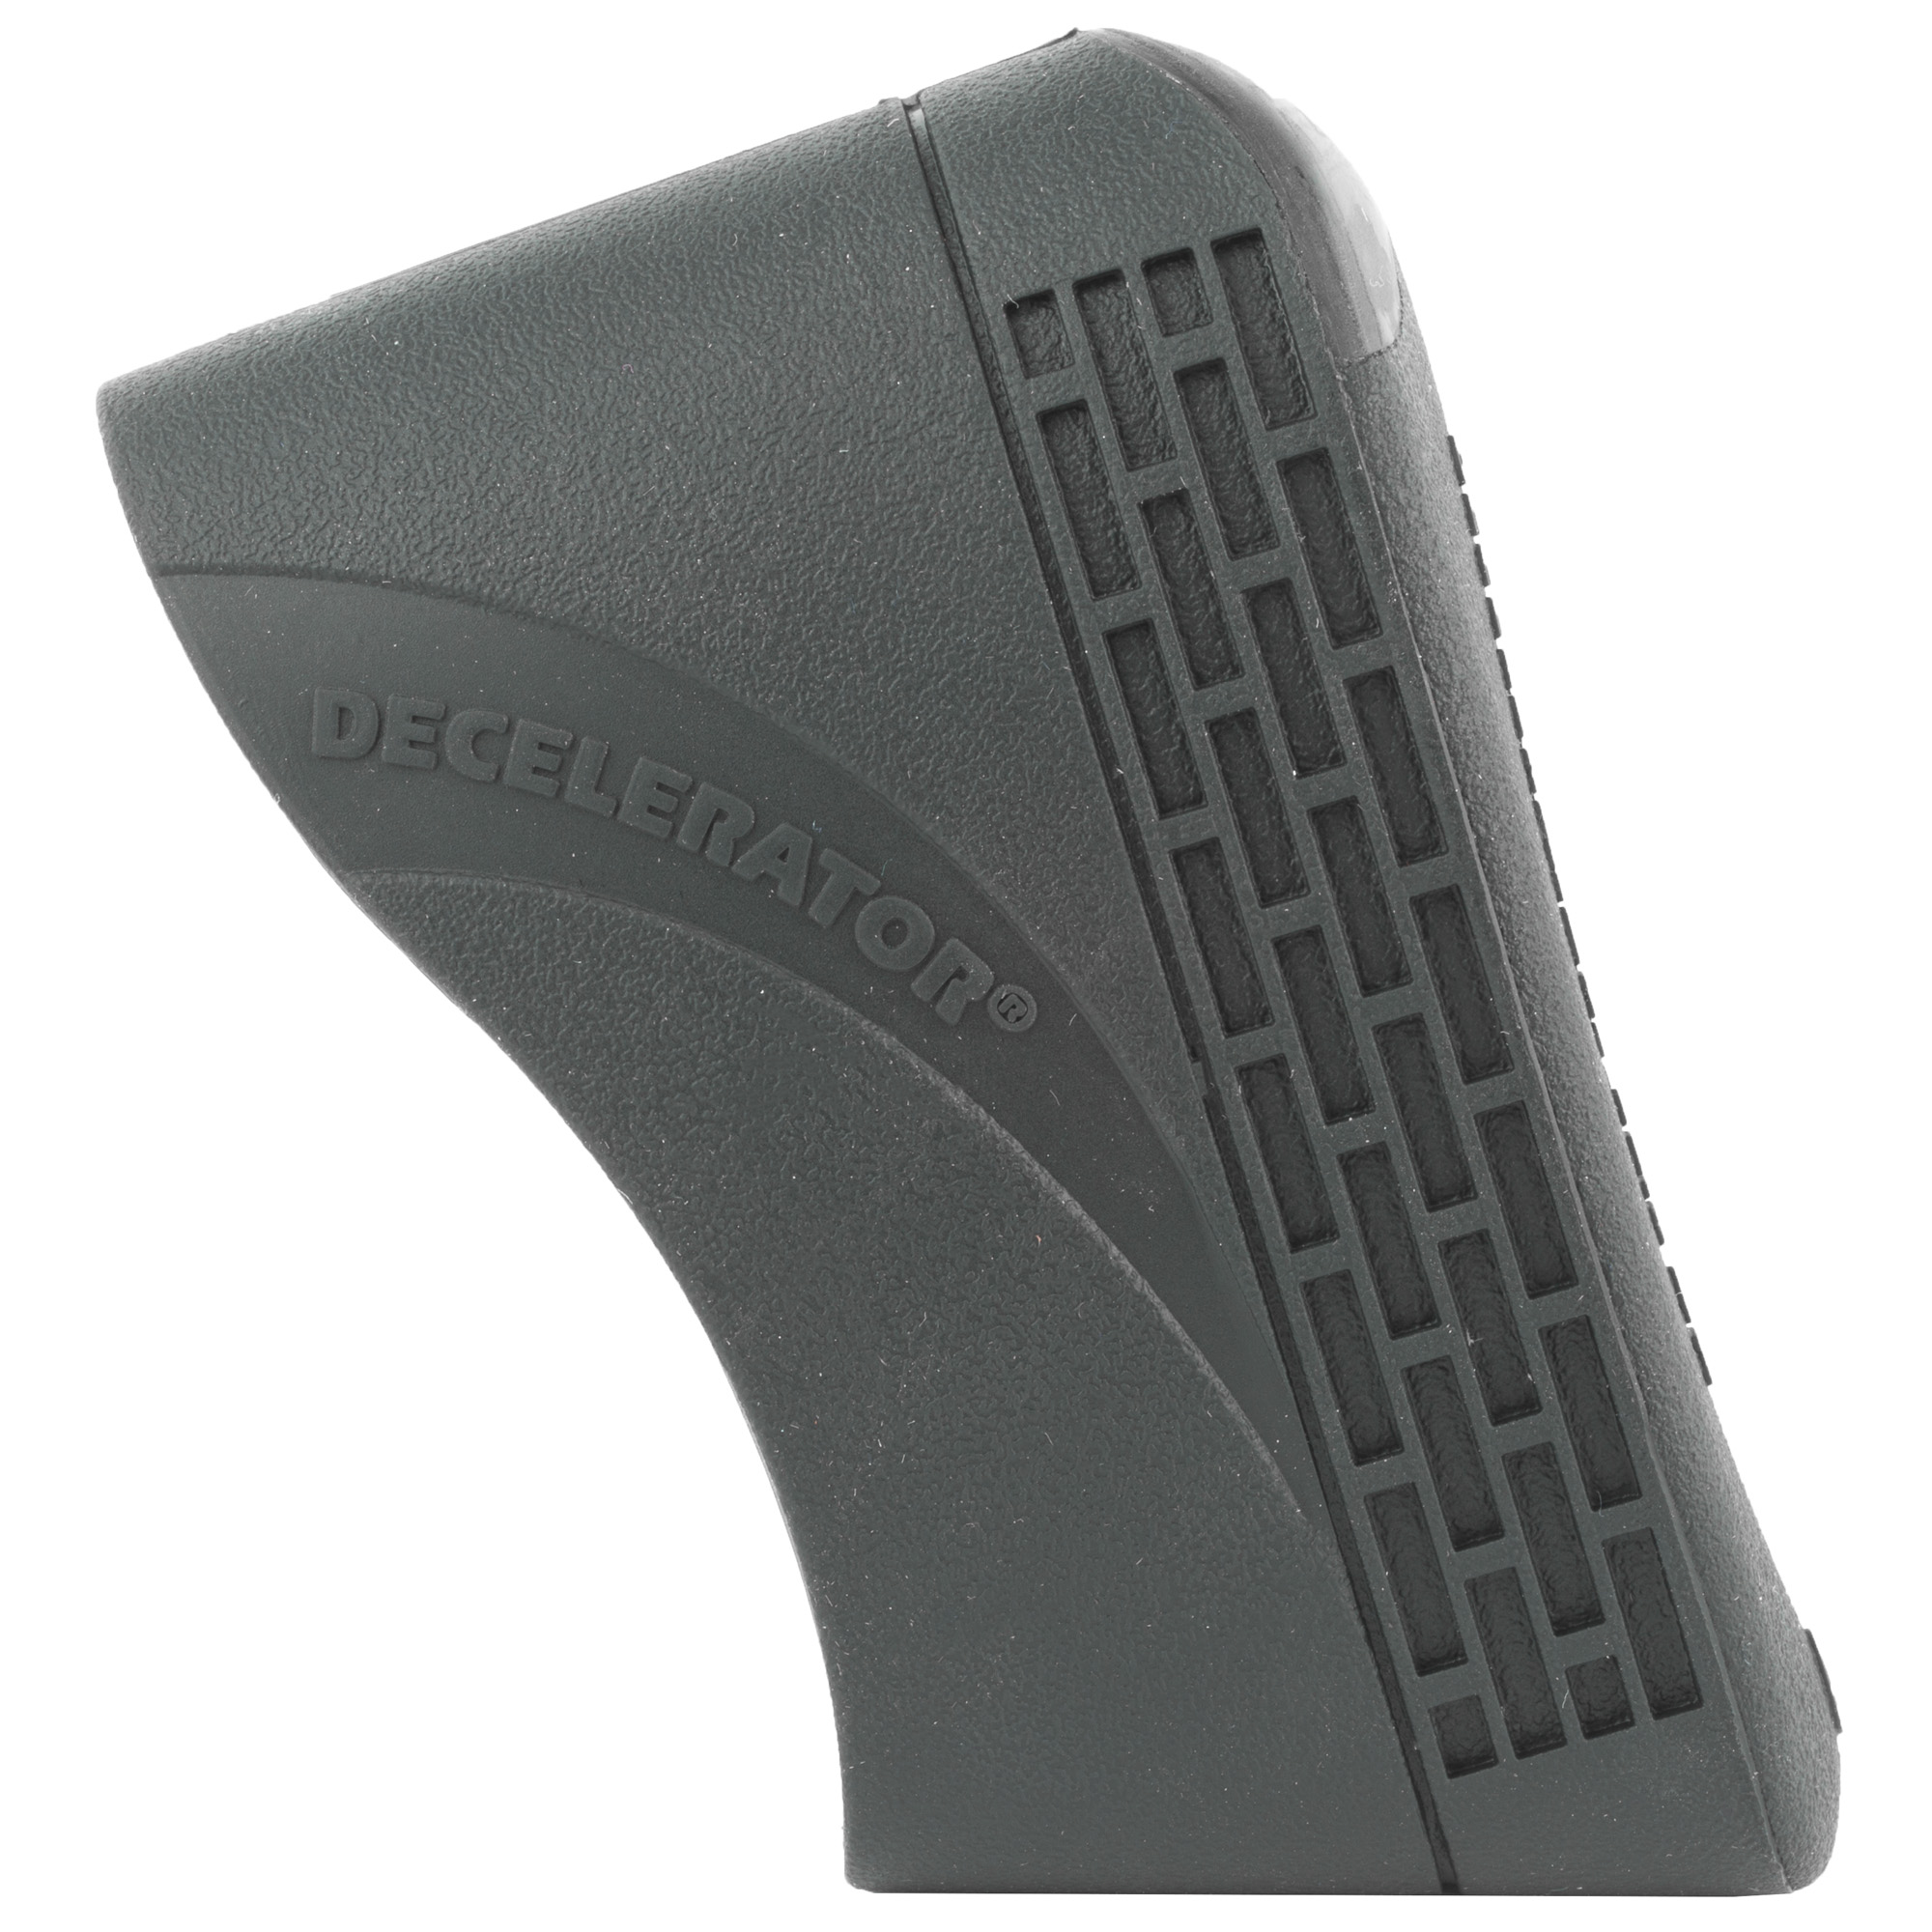 """Slip-On Pads fit most stocks. Easy to install"""" these pads offer excellent recoil absorption. Pads come in two different sizes"""" and are available in black or brown"""" to complement any style stock. Pads add 3/4"""" to the length of pull."""